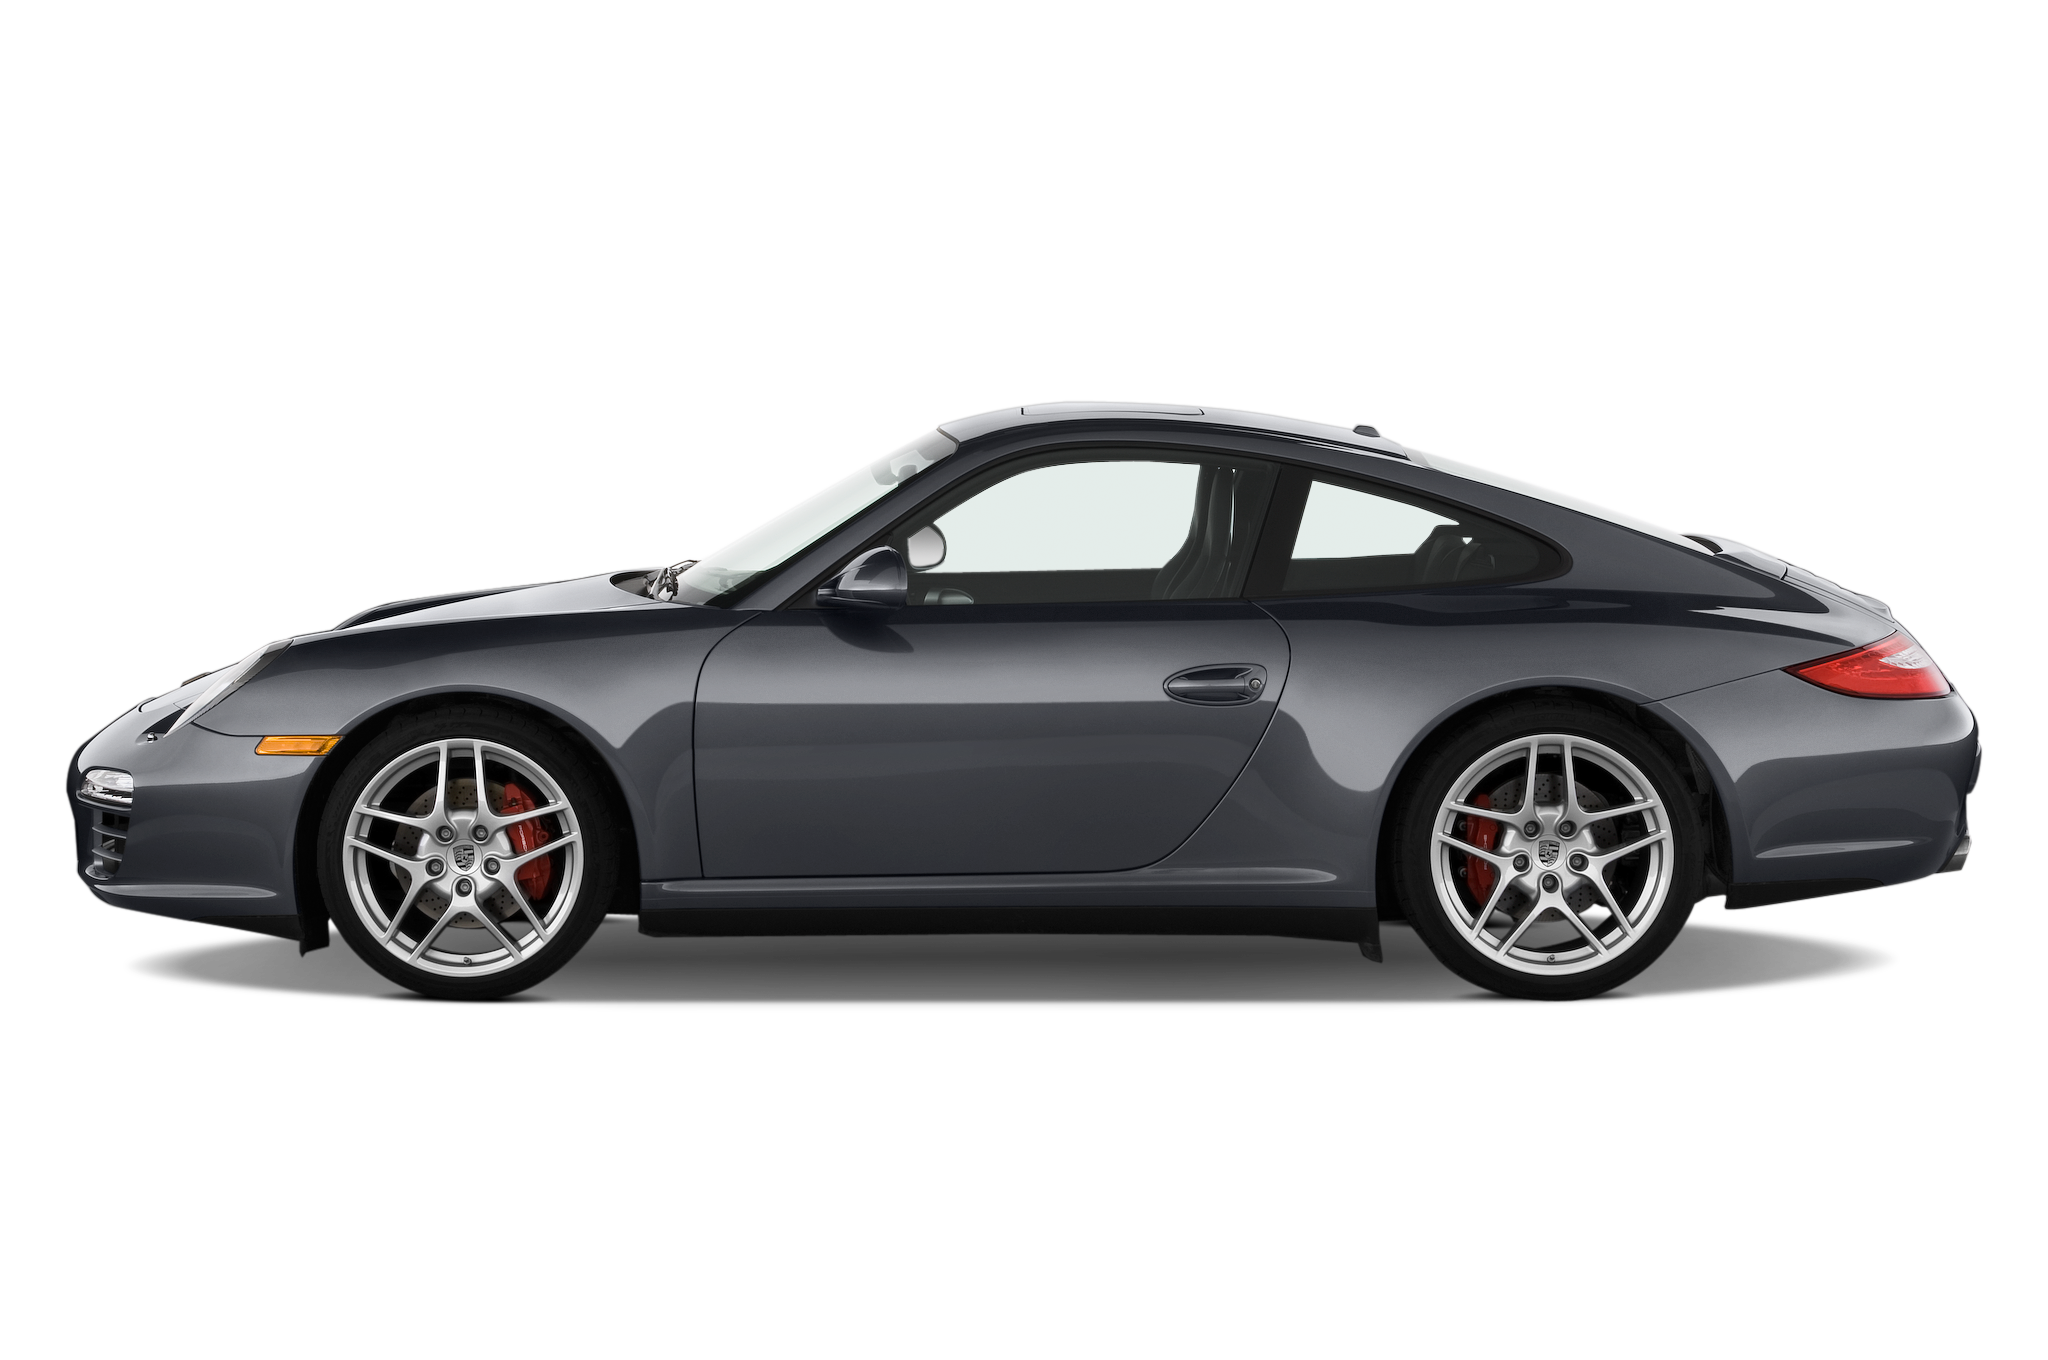 2012 Porsche 911 Carrera 4 Gts Adds Two More Flavors To The 911